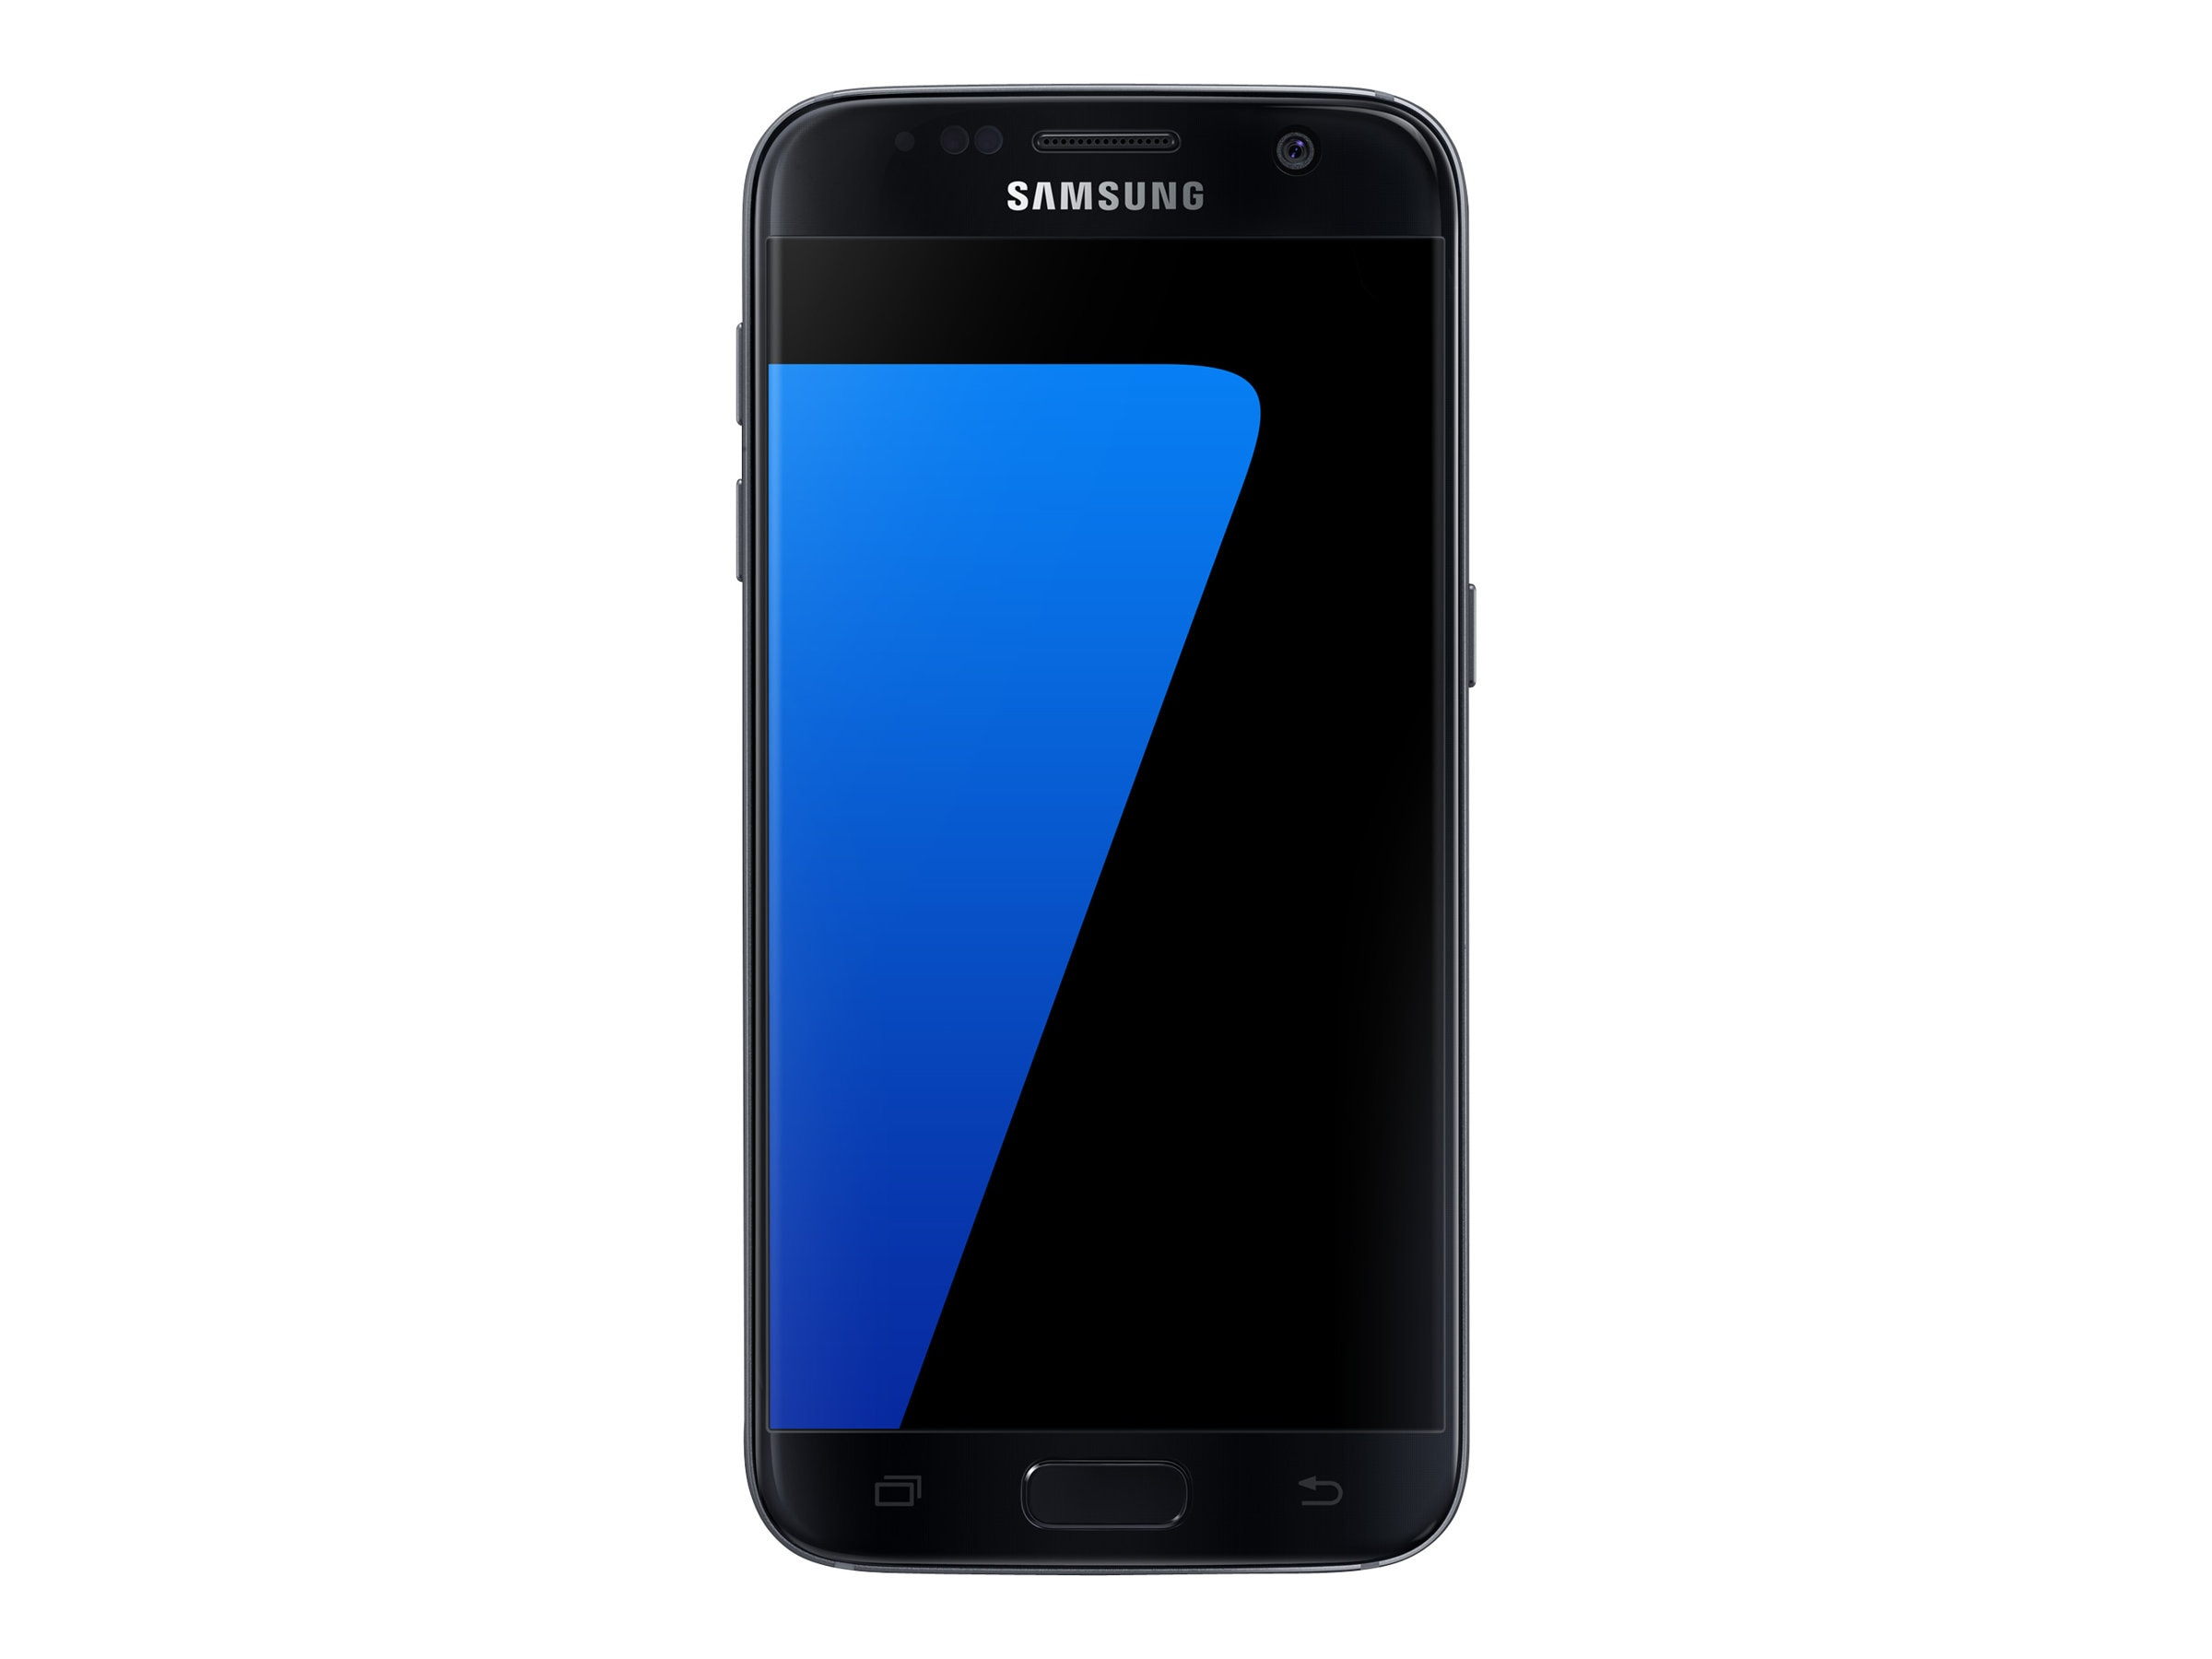 Samsung Galaxy S7 Smartphone, 32GB - Black Onyx (Unlocked)